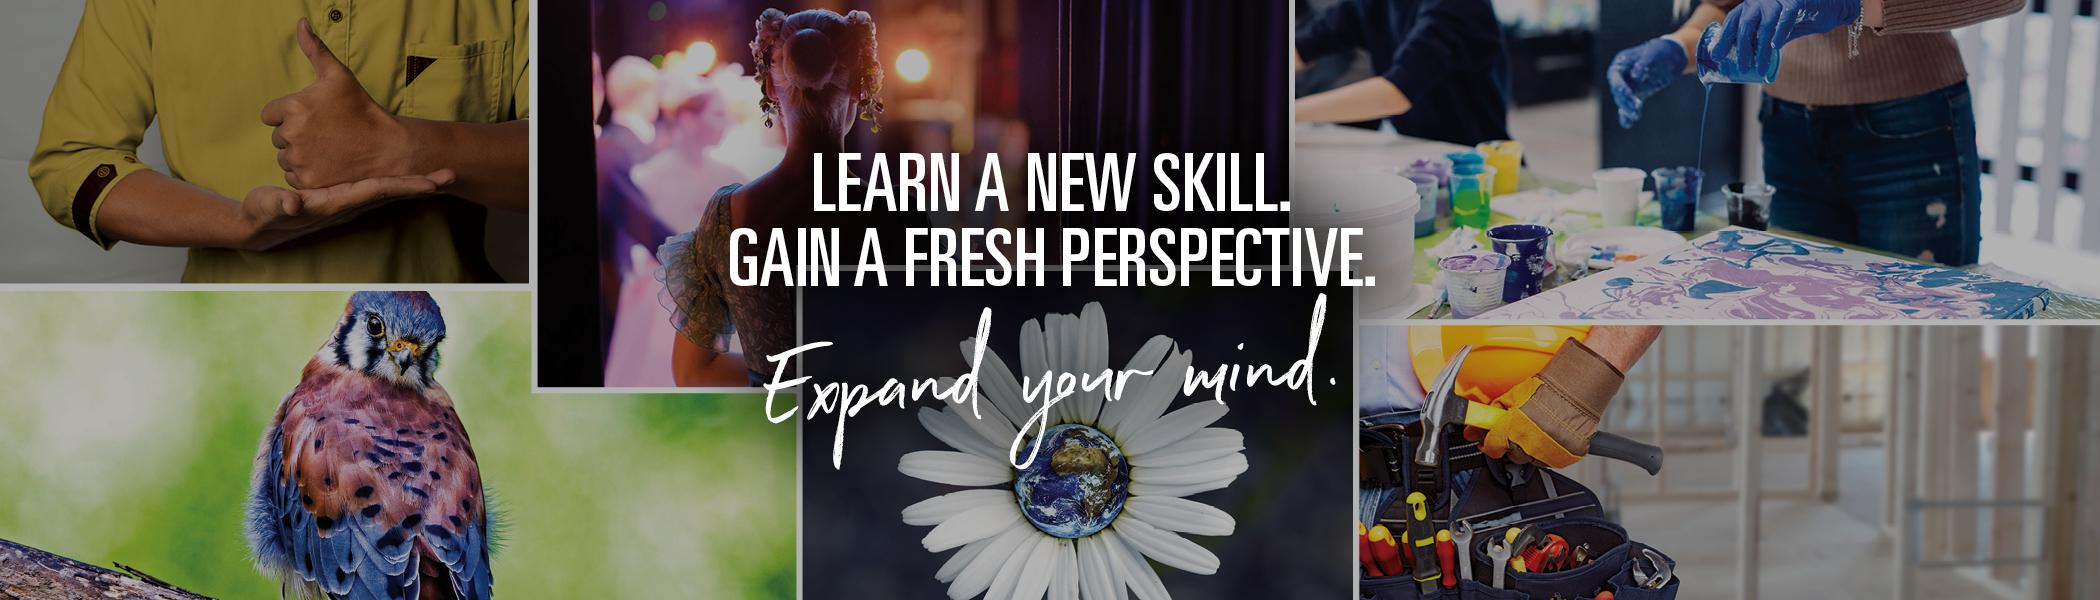 Continue your education. Expand your mind.